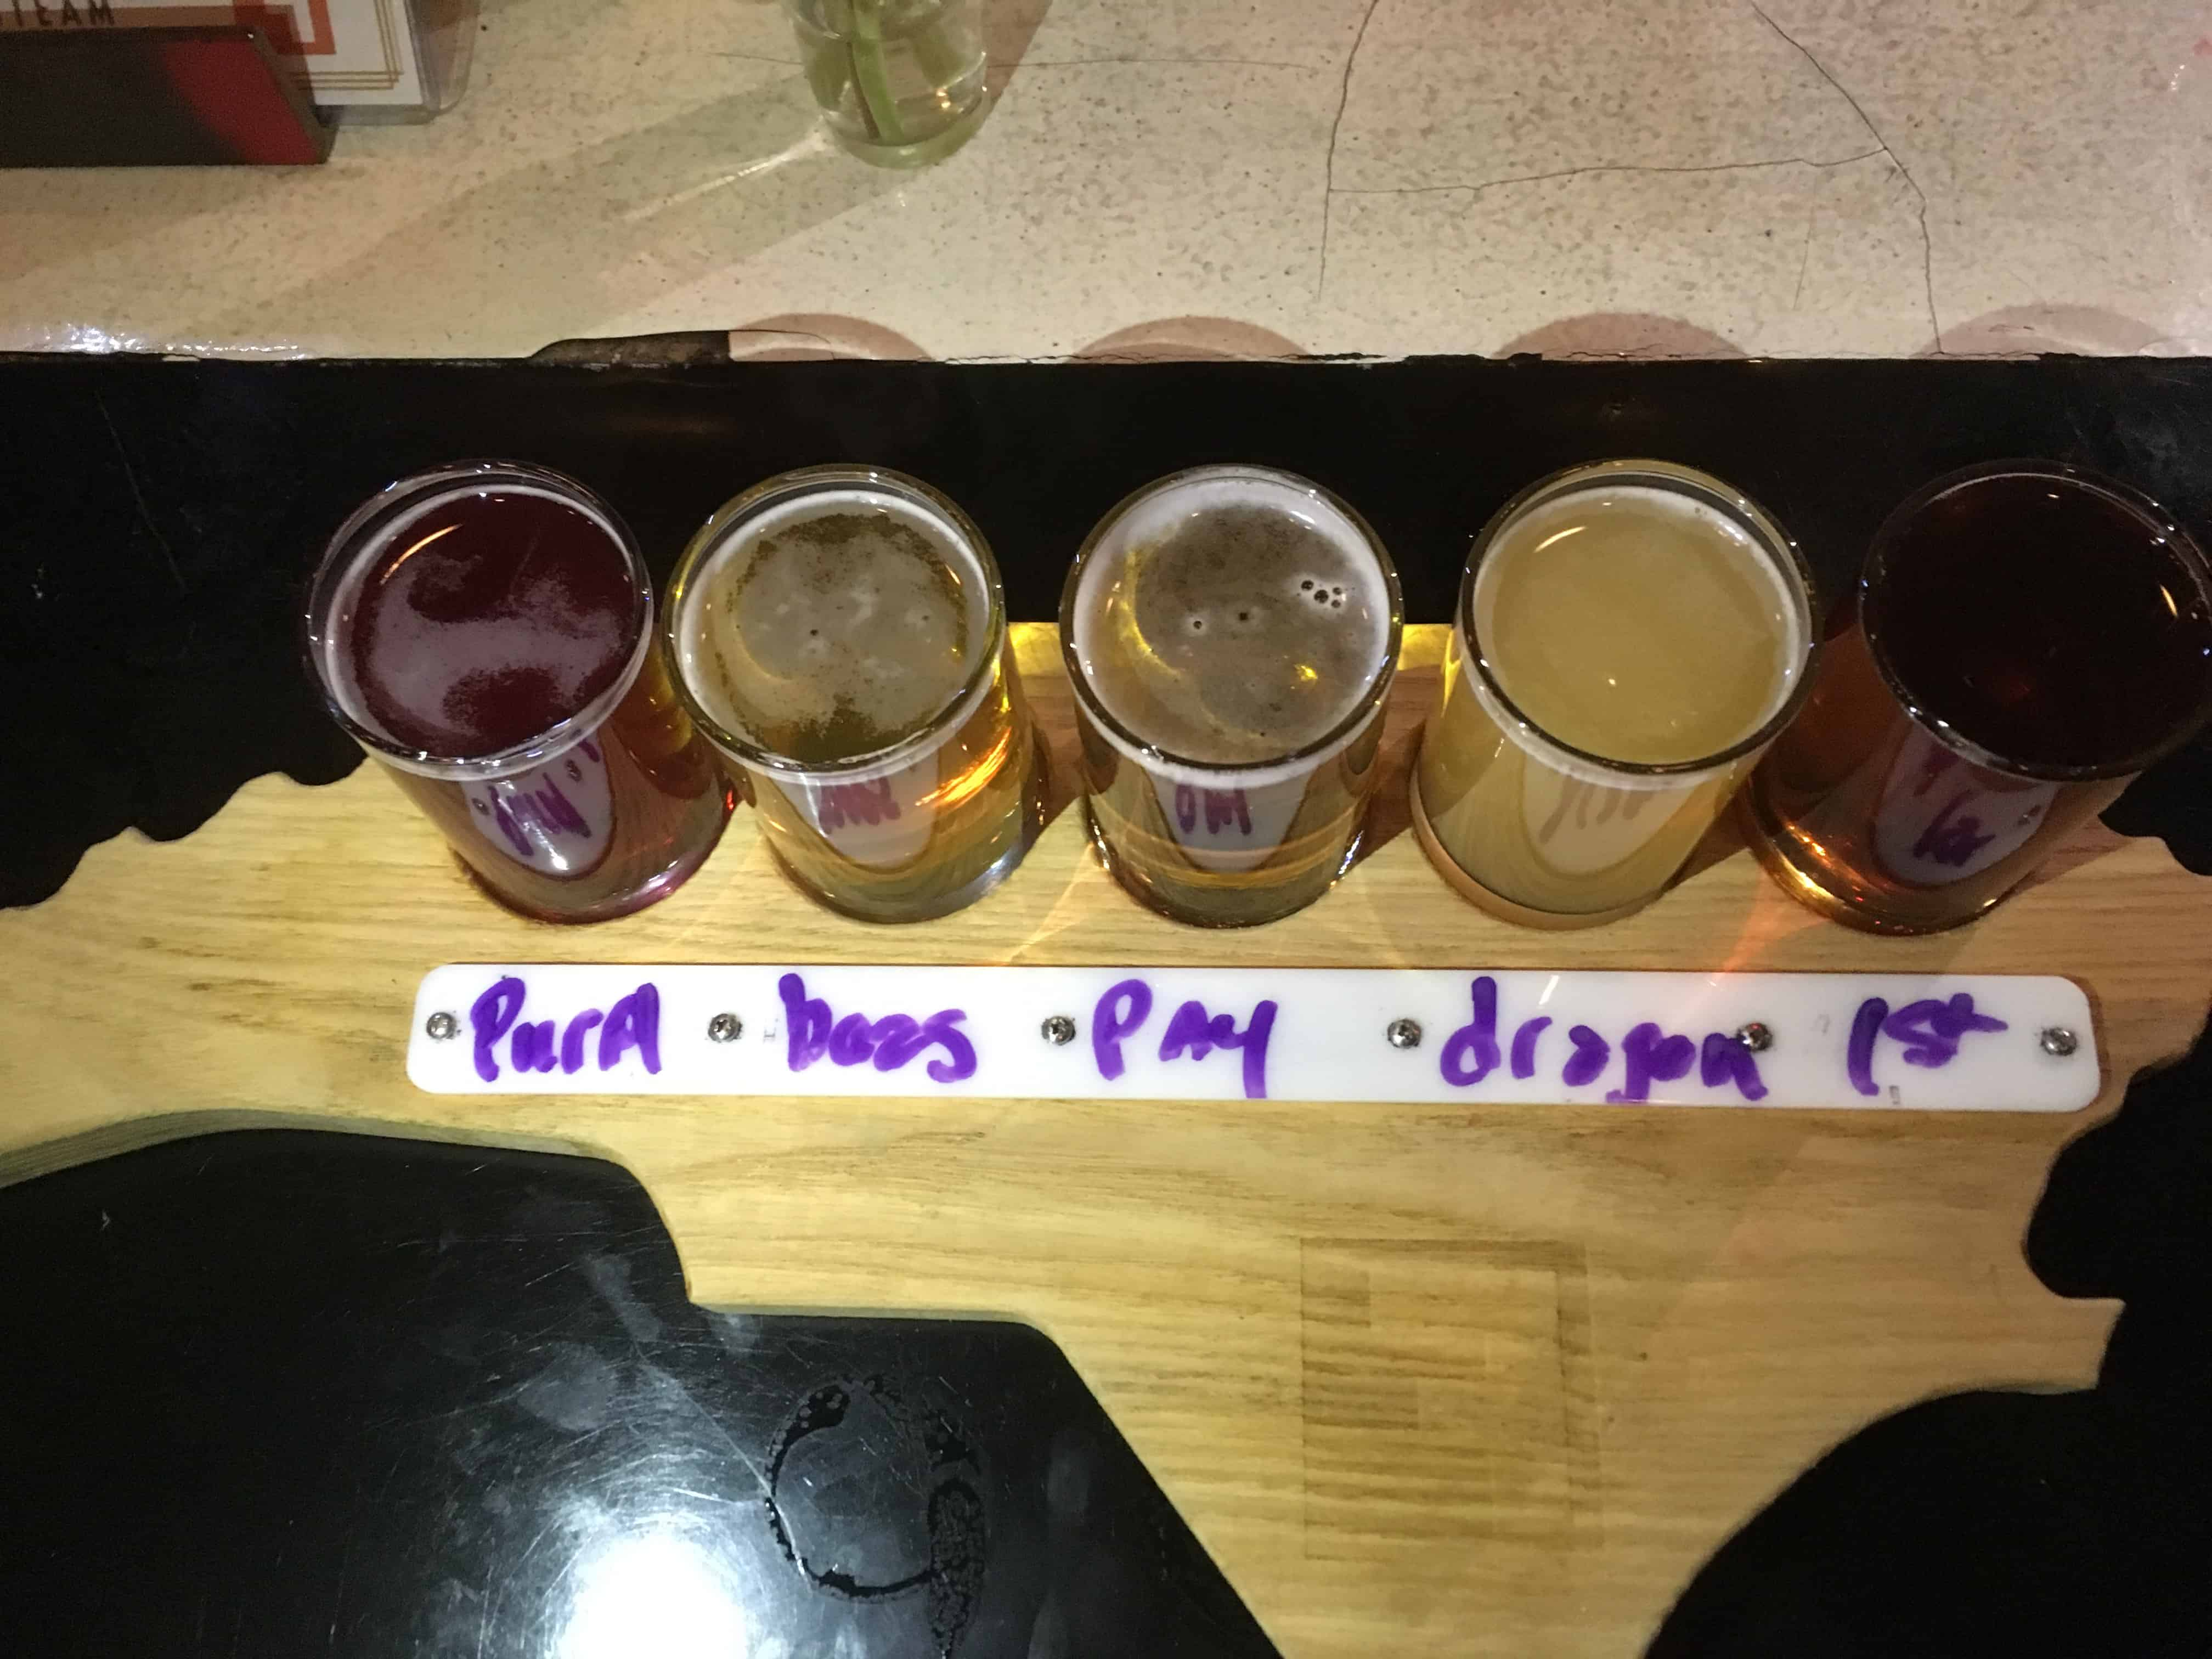 Fullsteam flight of beer on NC shaped board